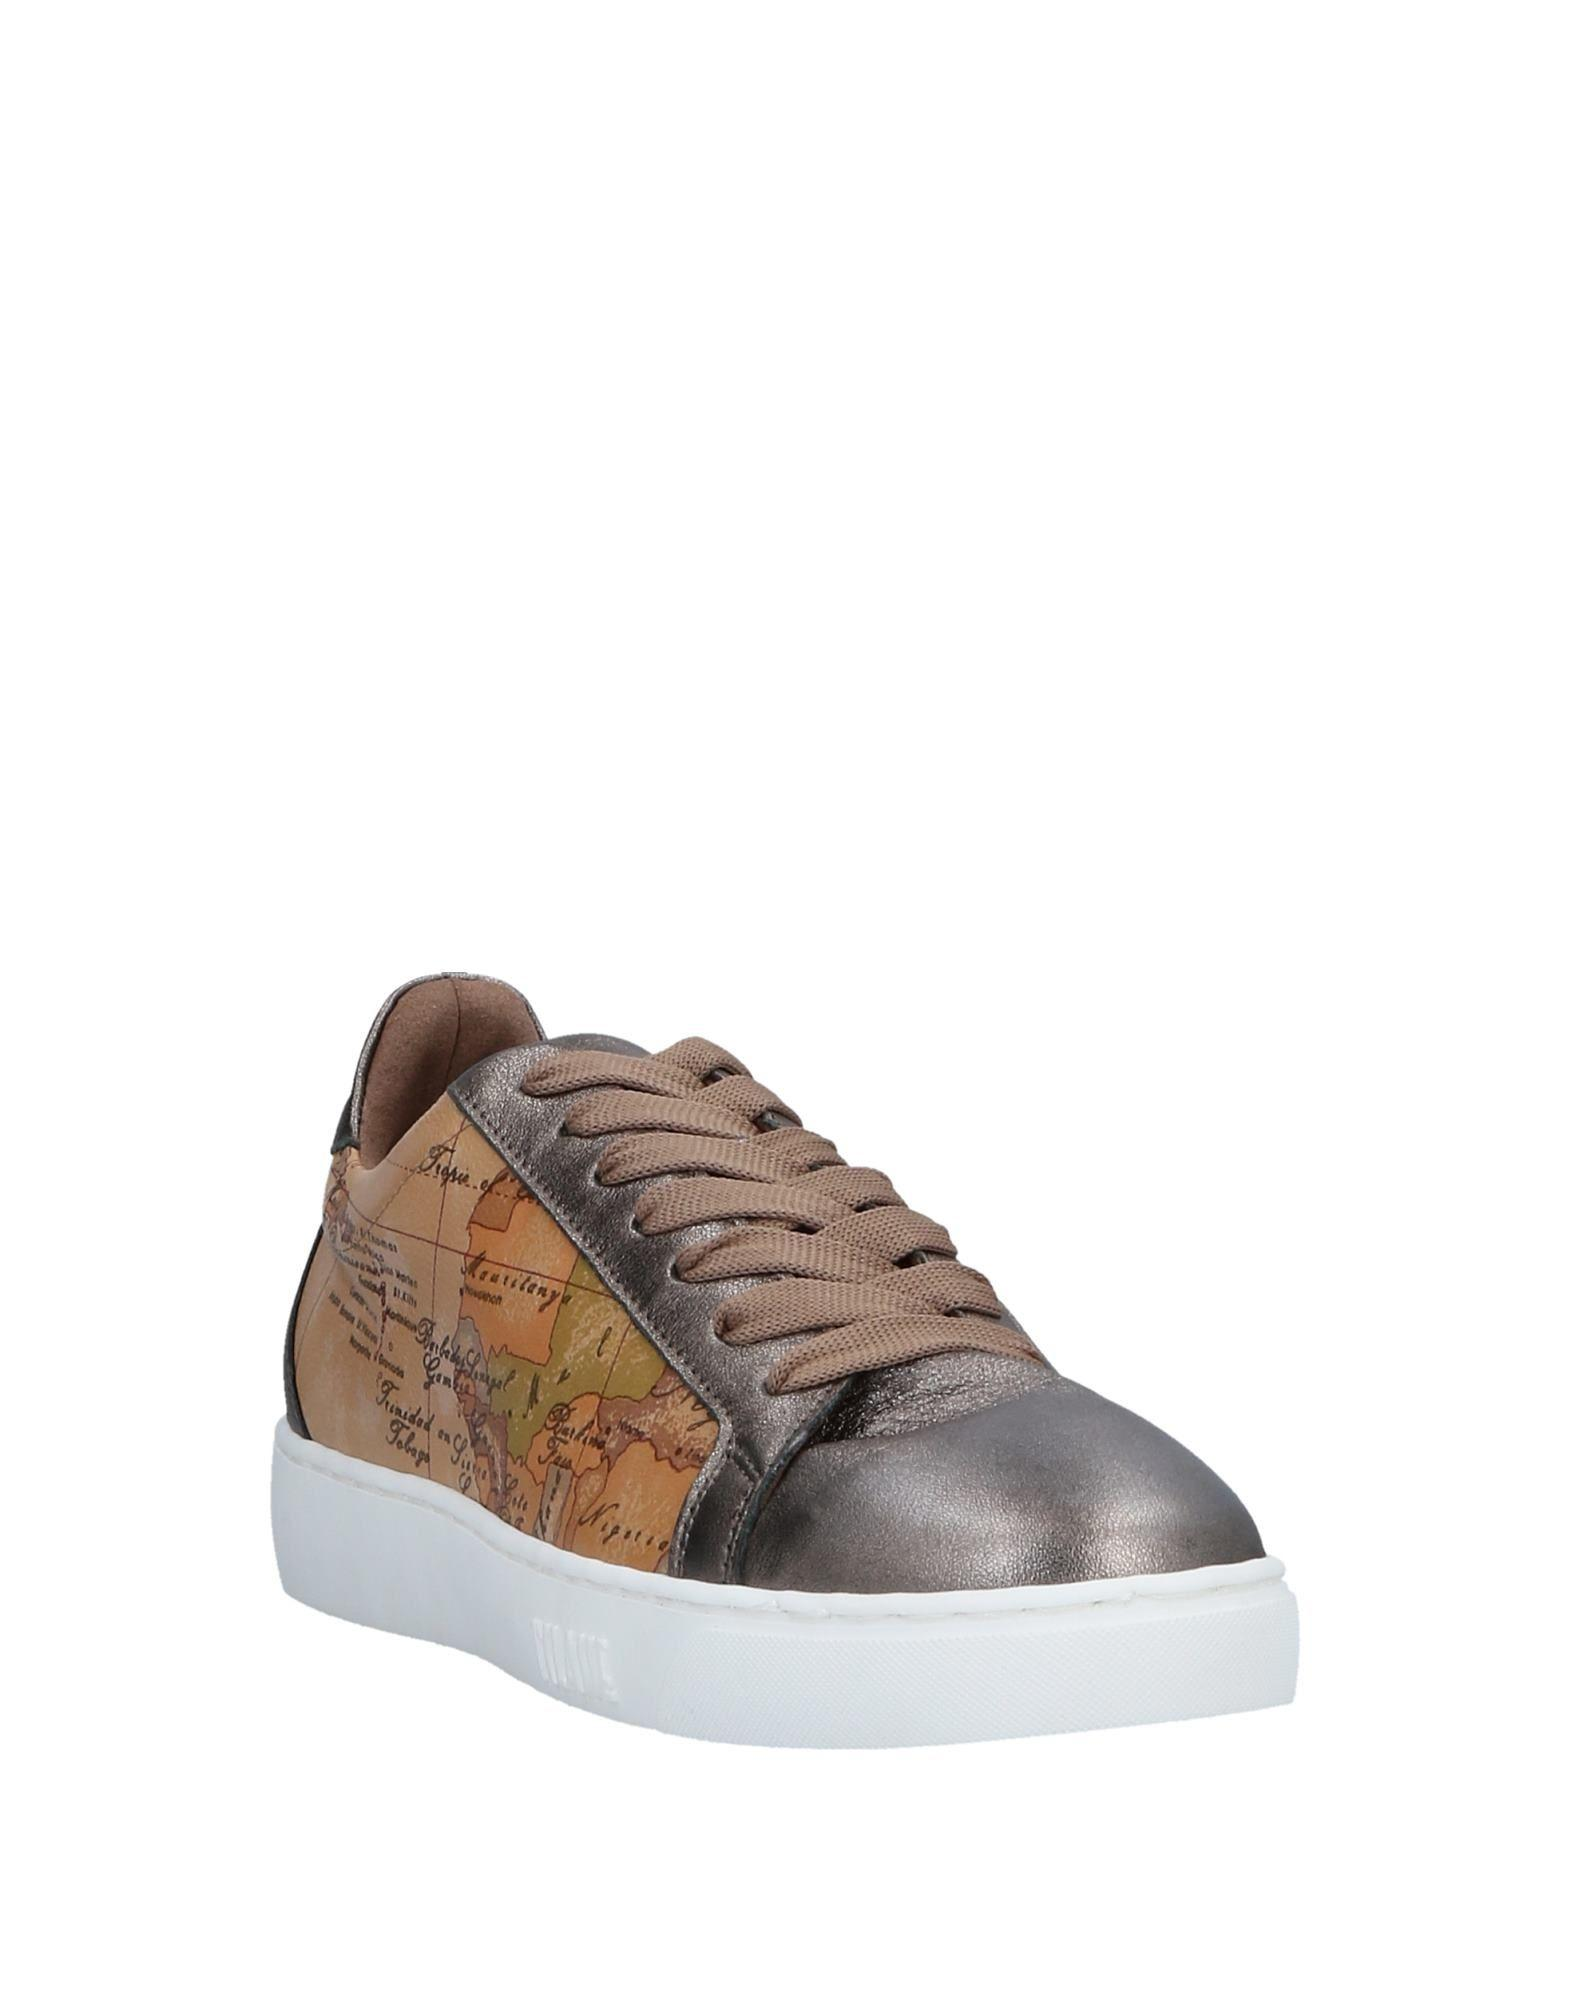 Alviero Martini 1A Classe Leather Low-tops & Sneakers in Silver (Metallic)